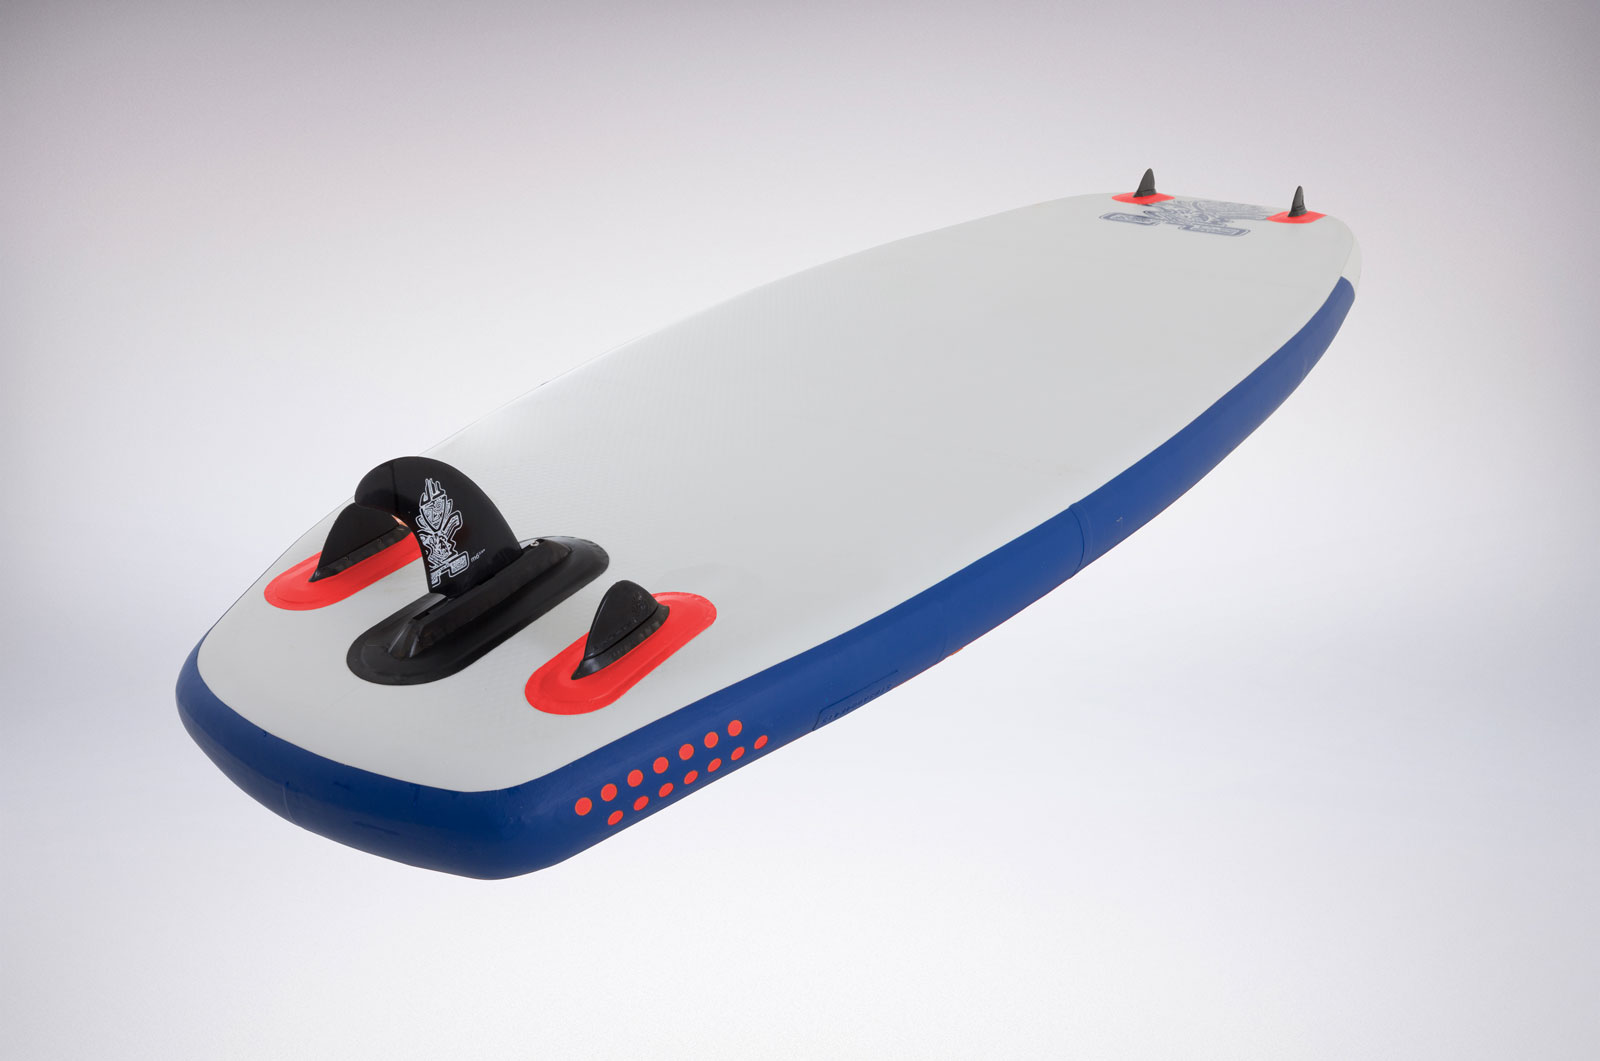 The new SUP Polo Astro Zen featuring a twin tip and two nose fins